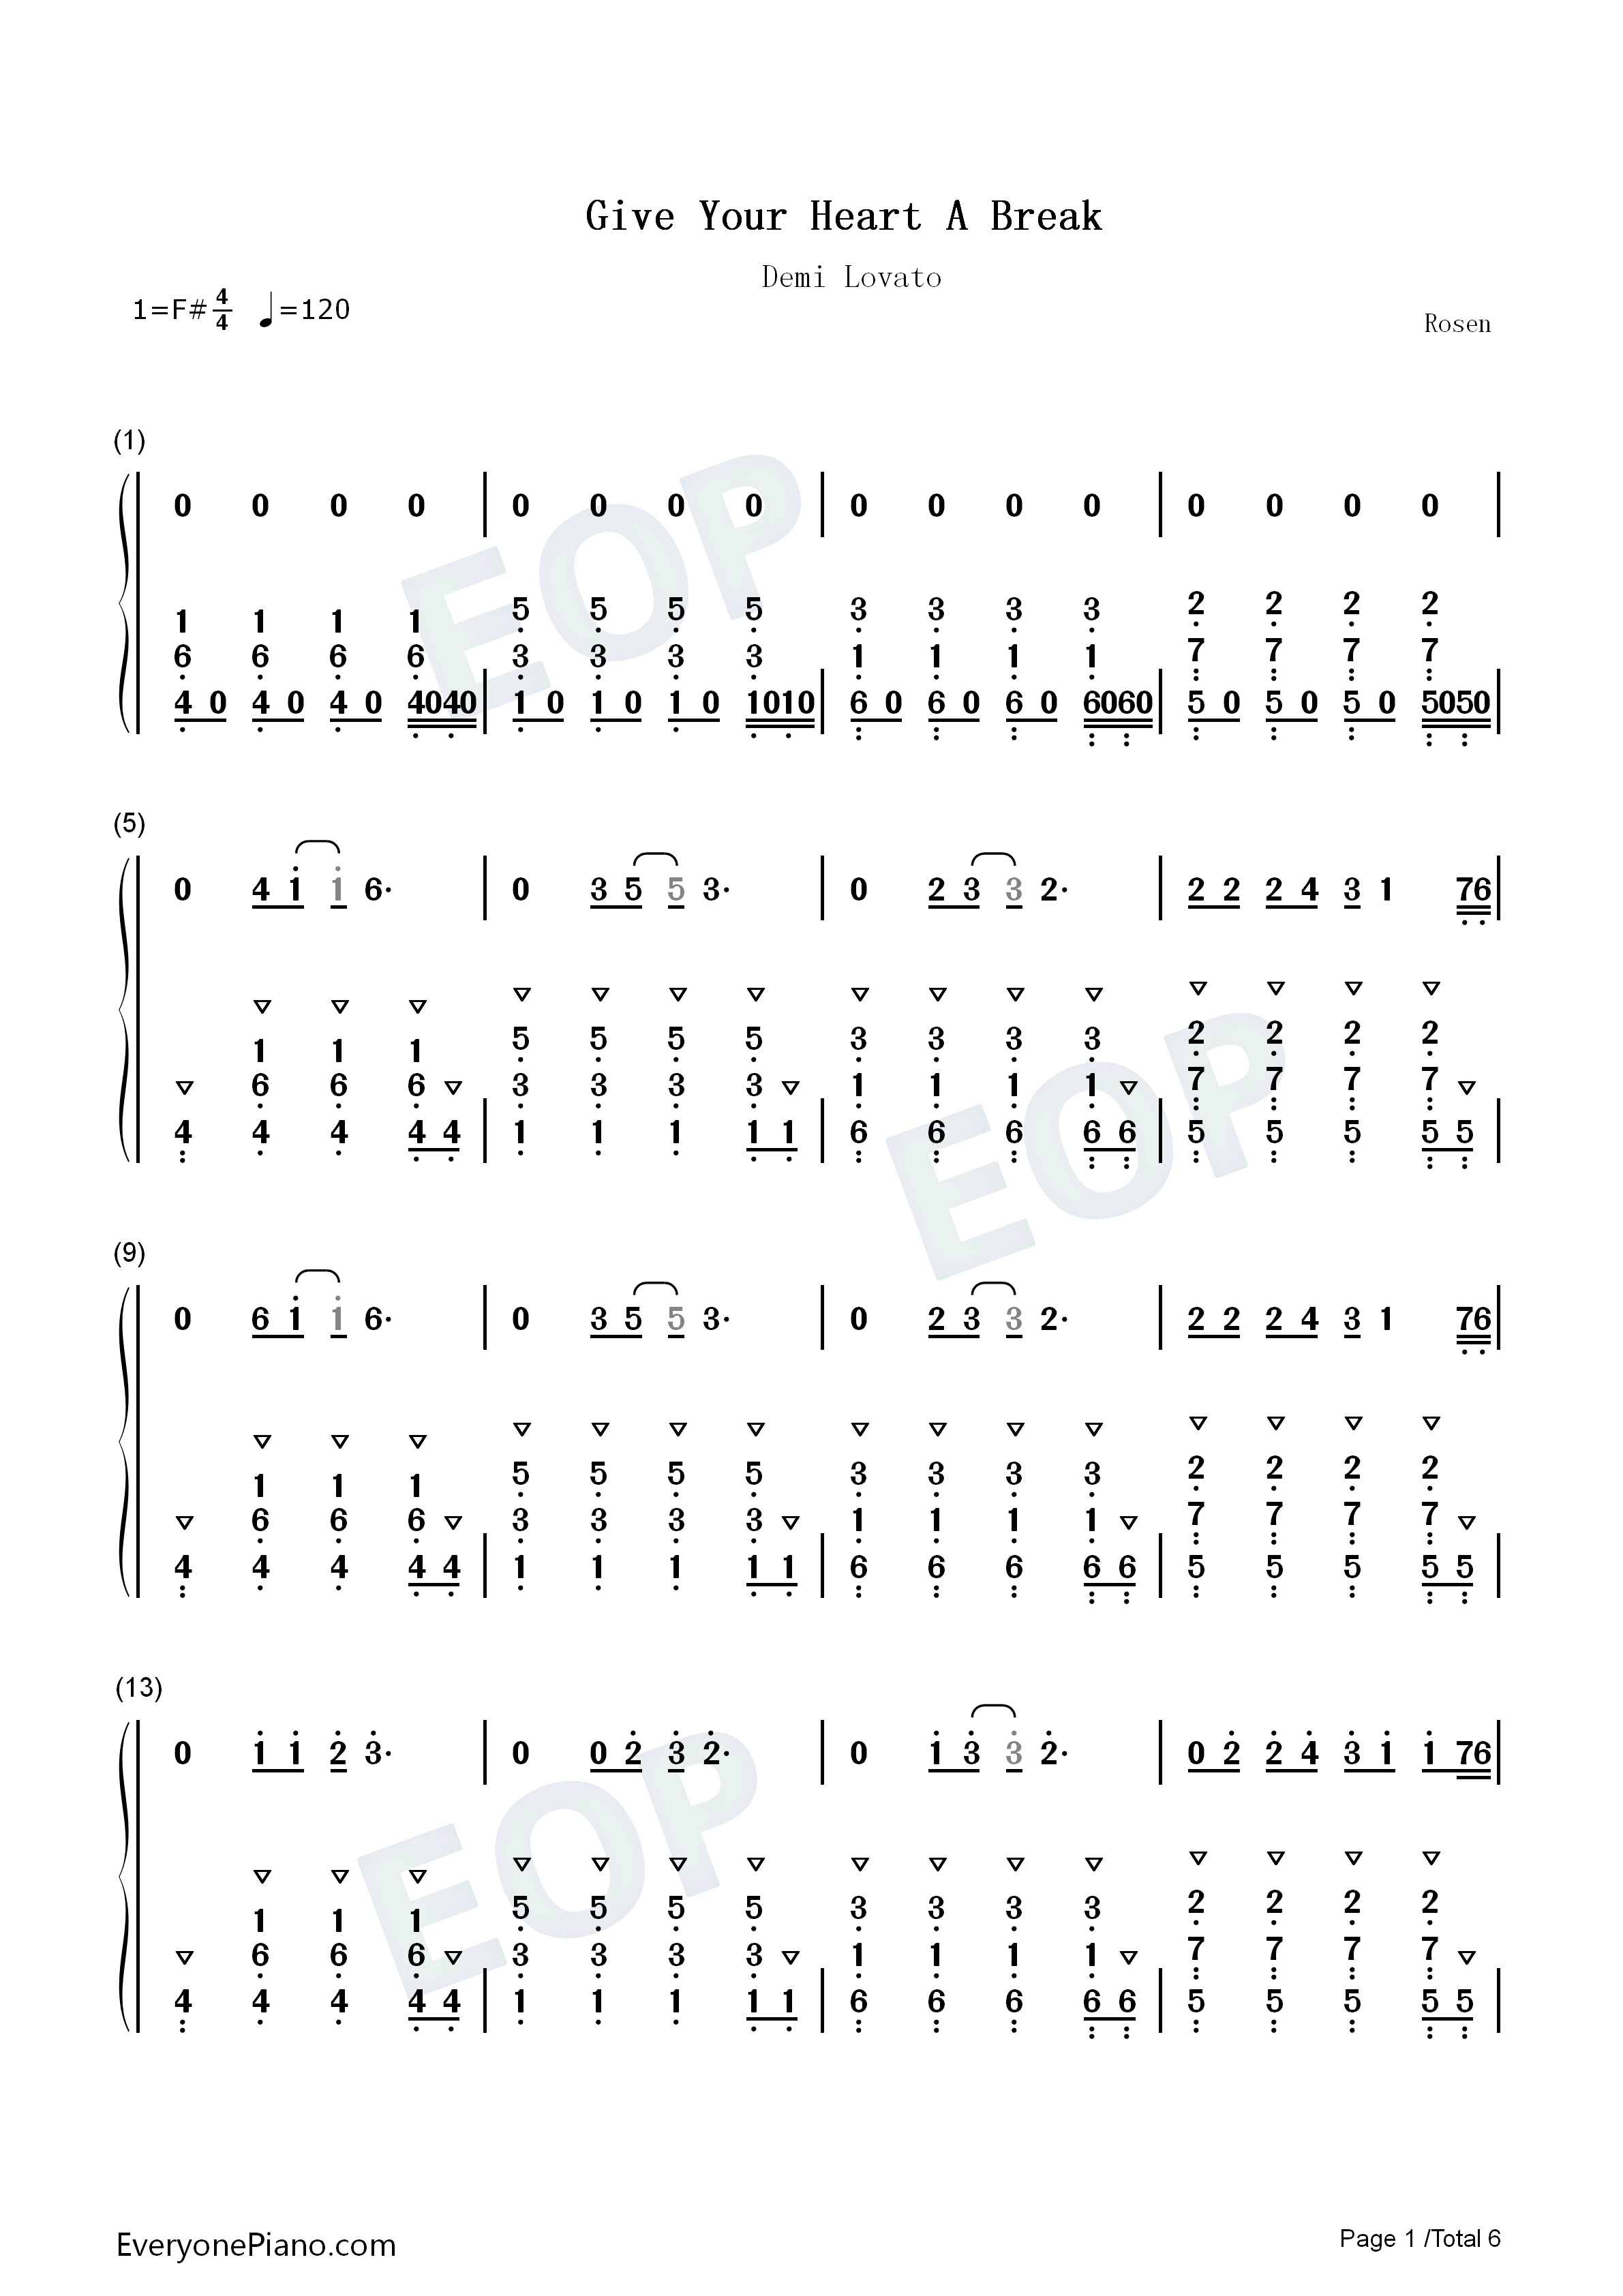 Give your heart a break demi lovato numbered musical notation listen now print sheet give your heart a break demi lovato numbered musical notation preview 1 hexwebz Choice Image